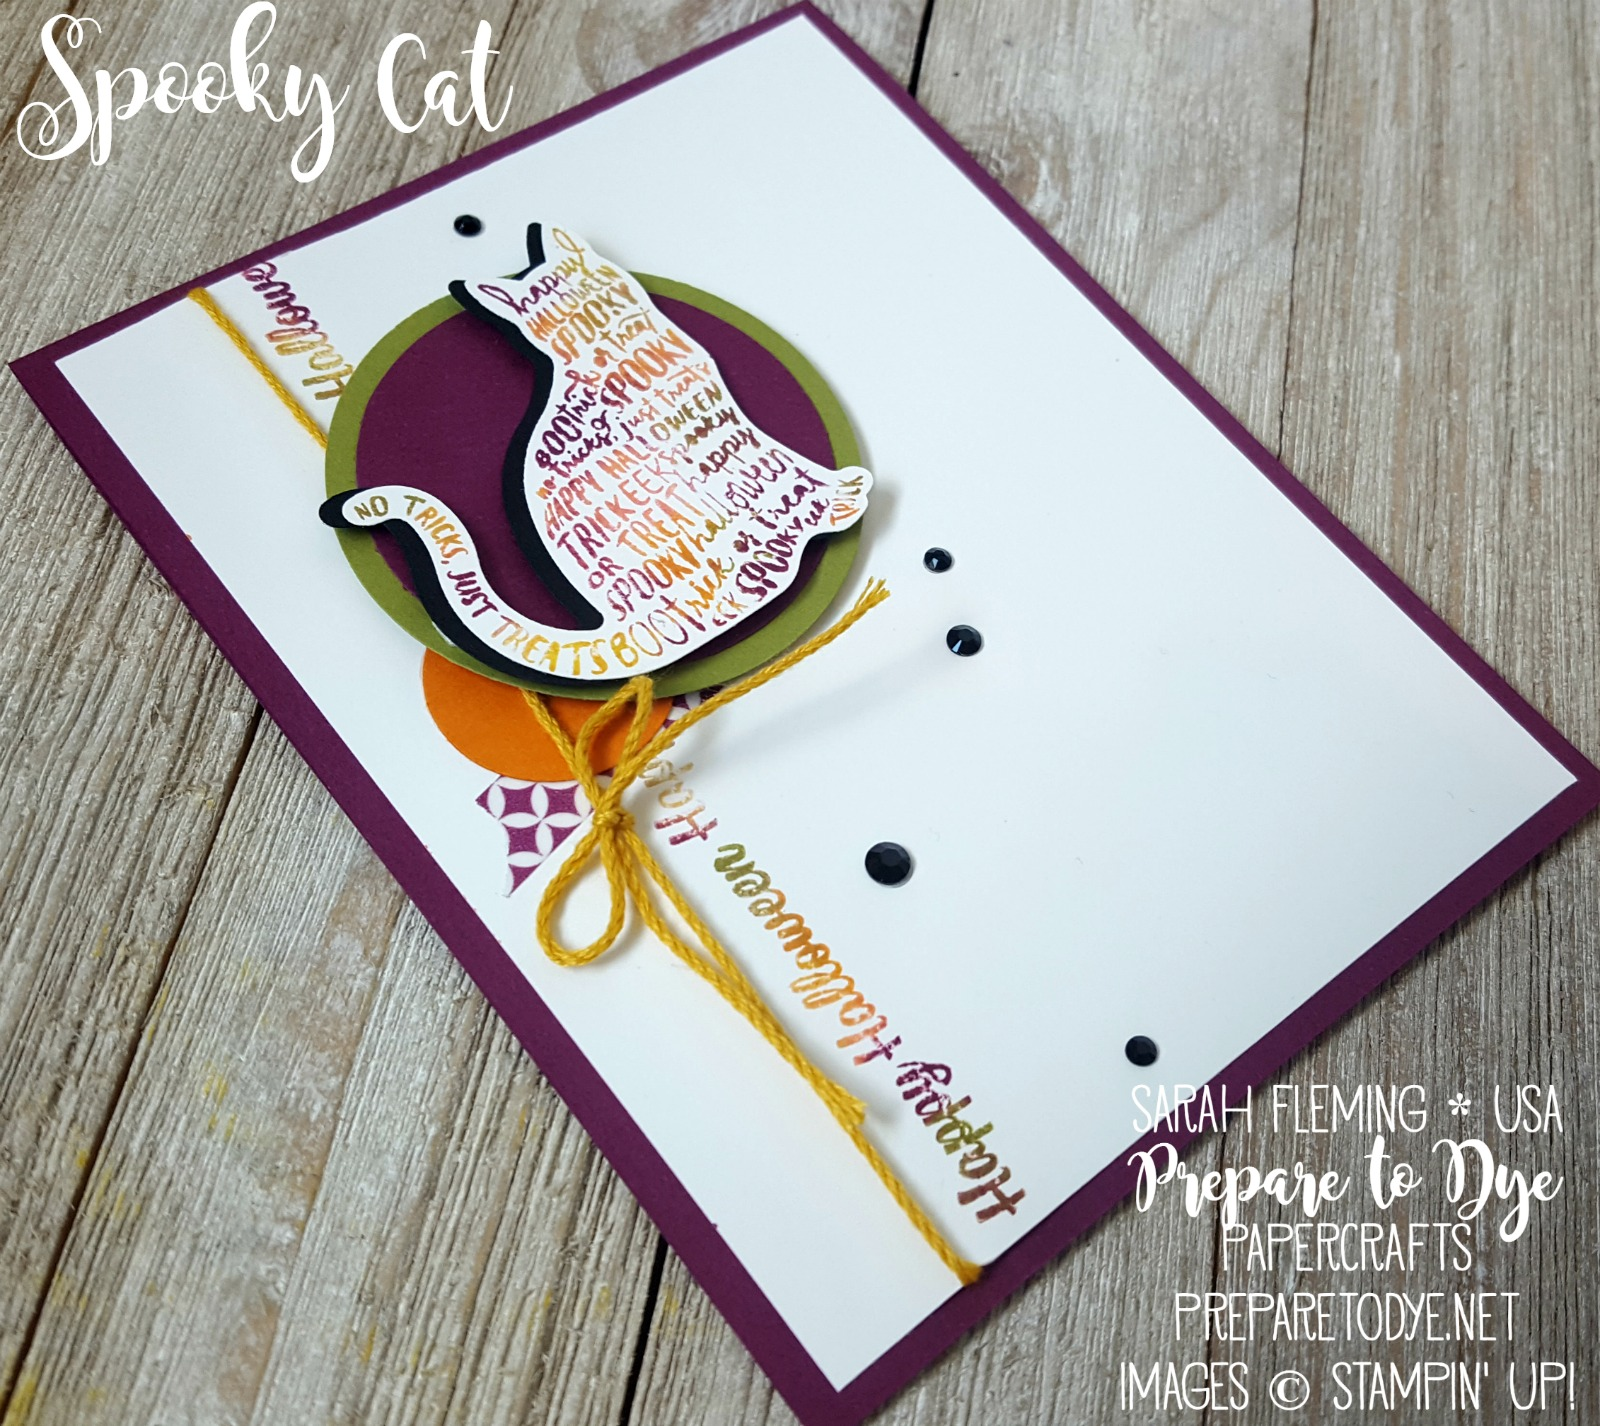 Stampin' Up! Holiday Catalog sneak peek - Spooky Cat bundle with black rhinestones - Sarah Fleming - Prepare to Dye Papercrafts